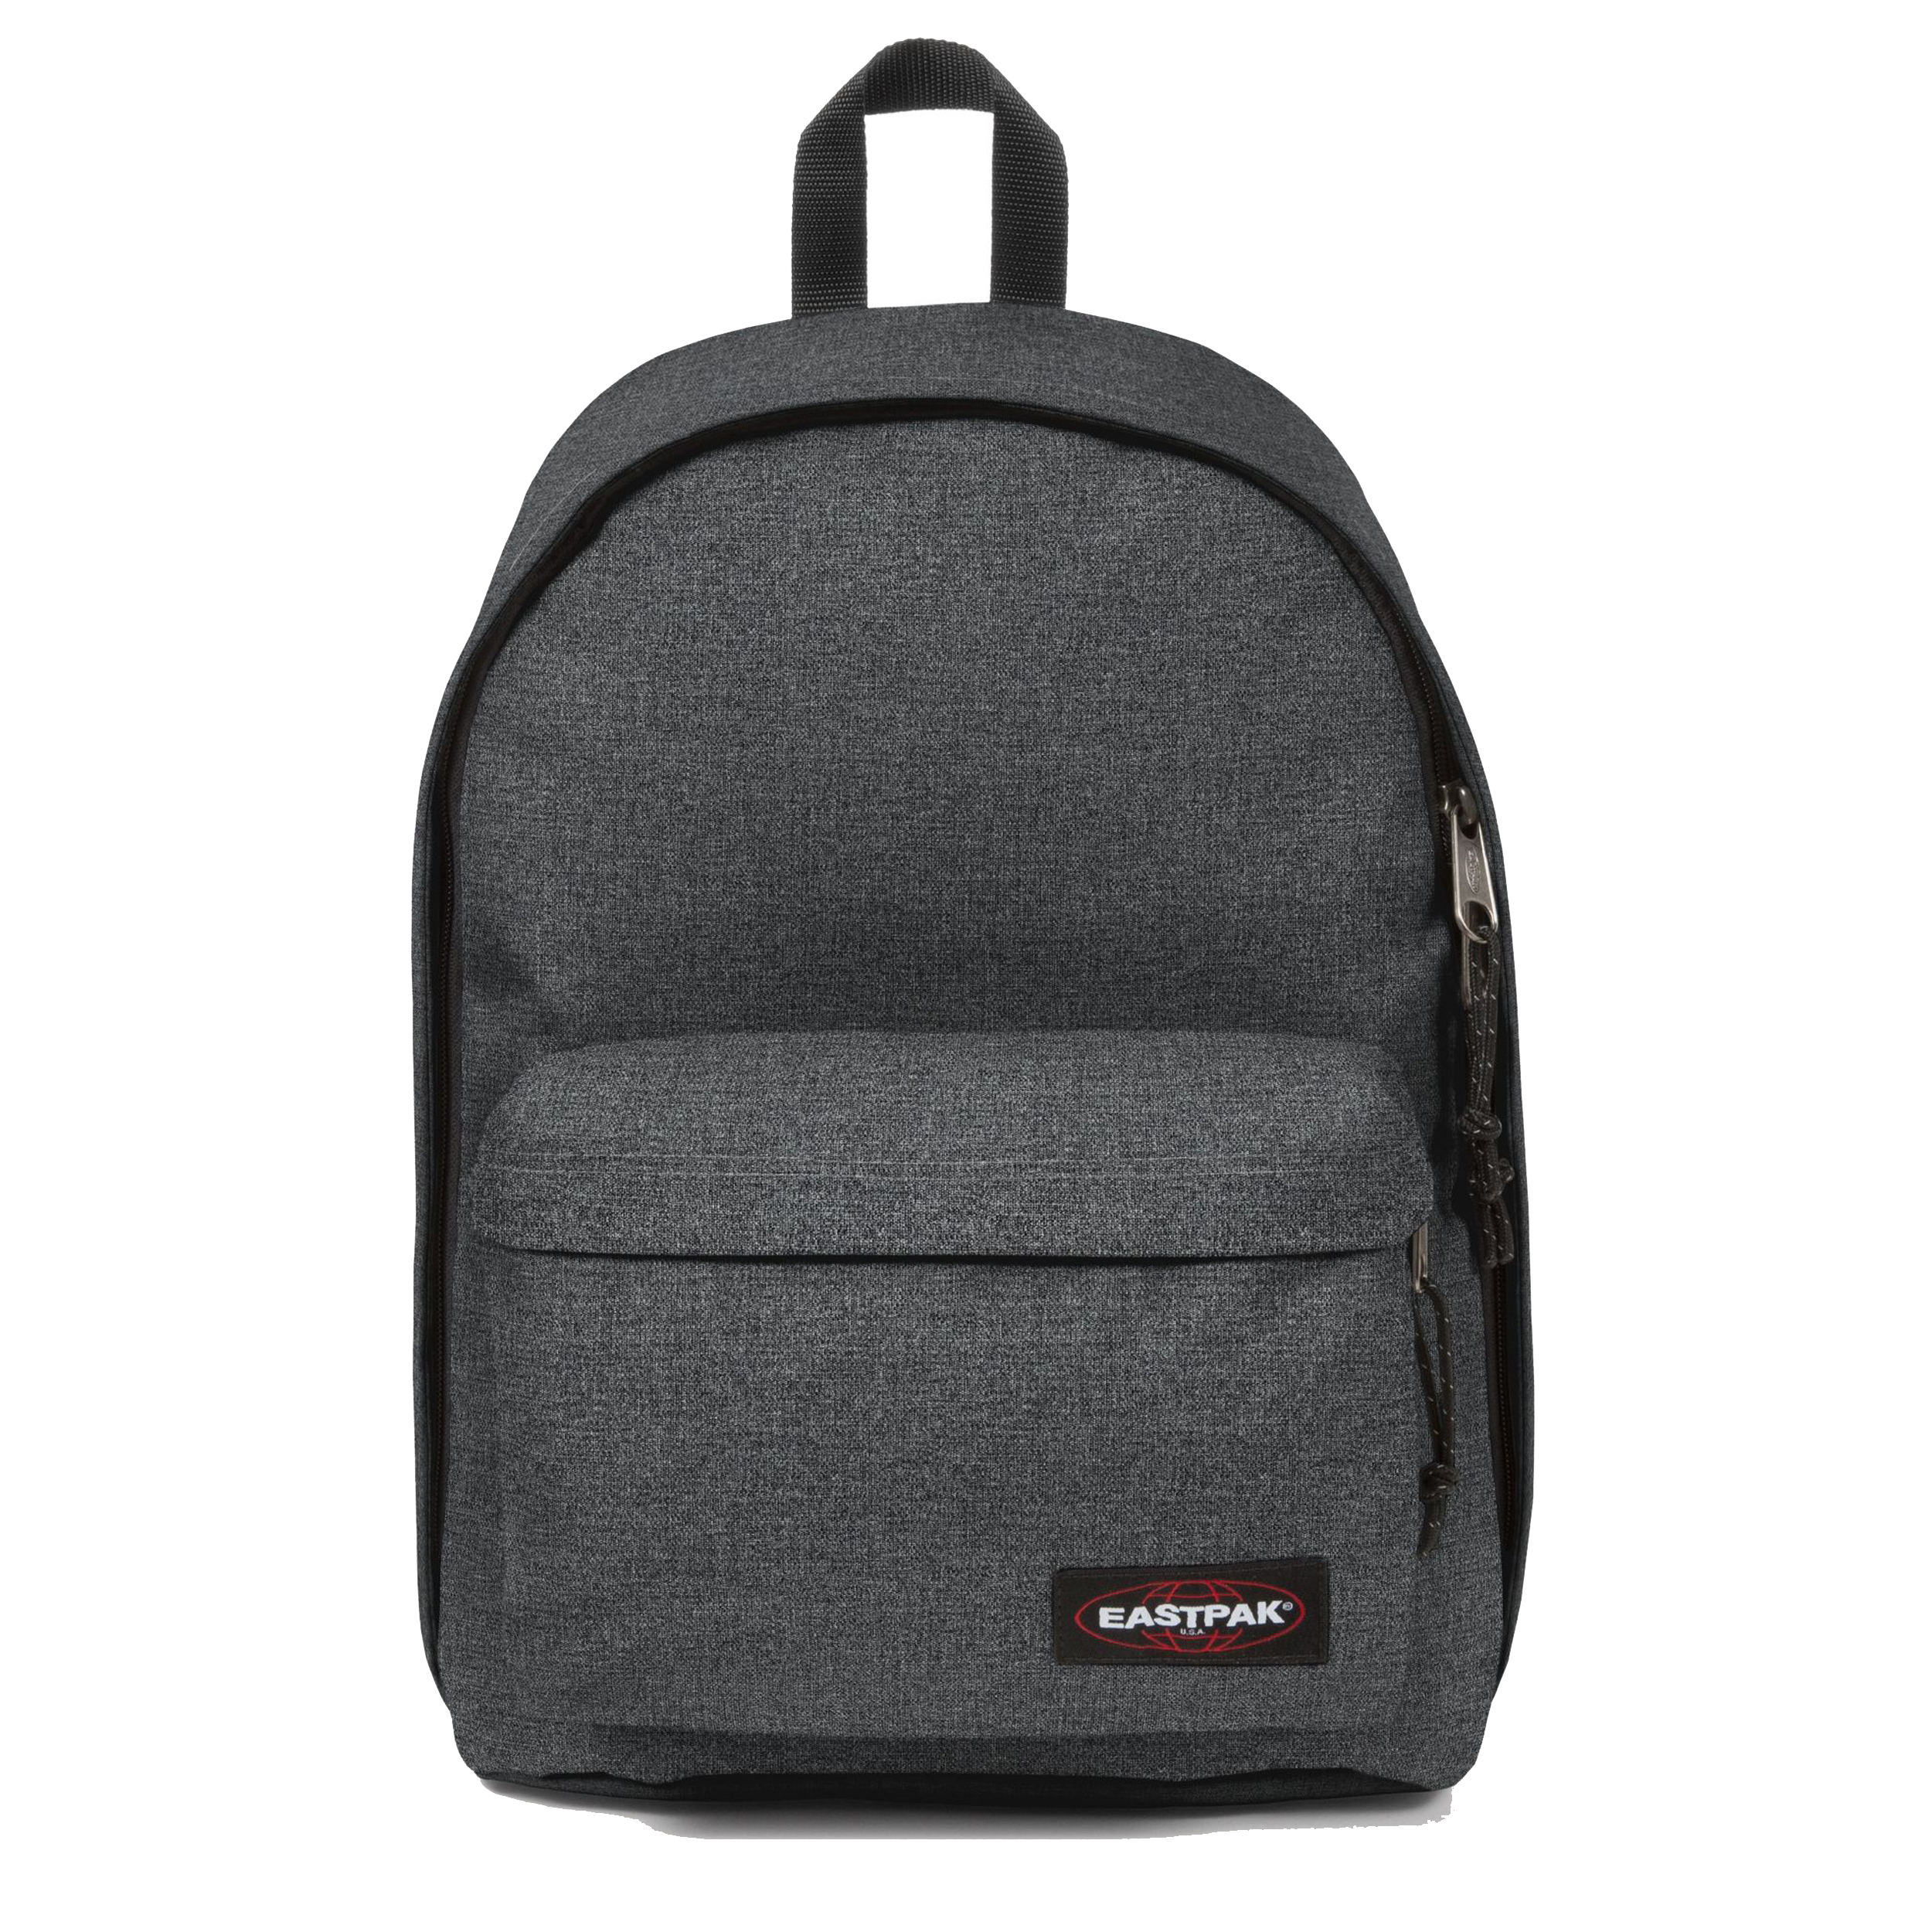 Sac à dos  out of office 27l gris anthracite effet denim